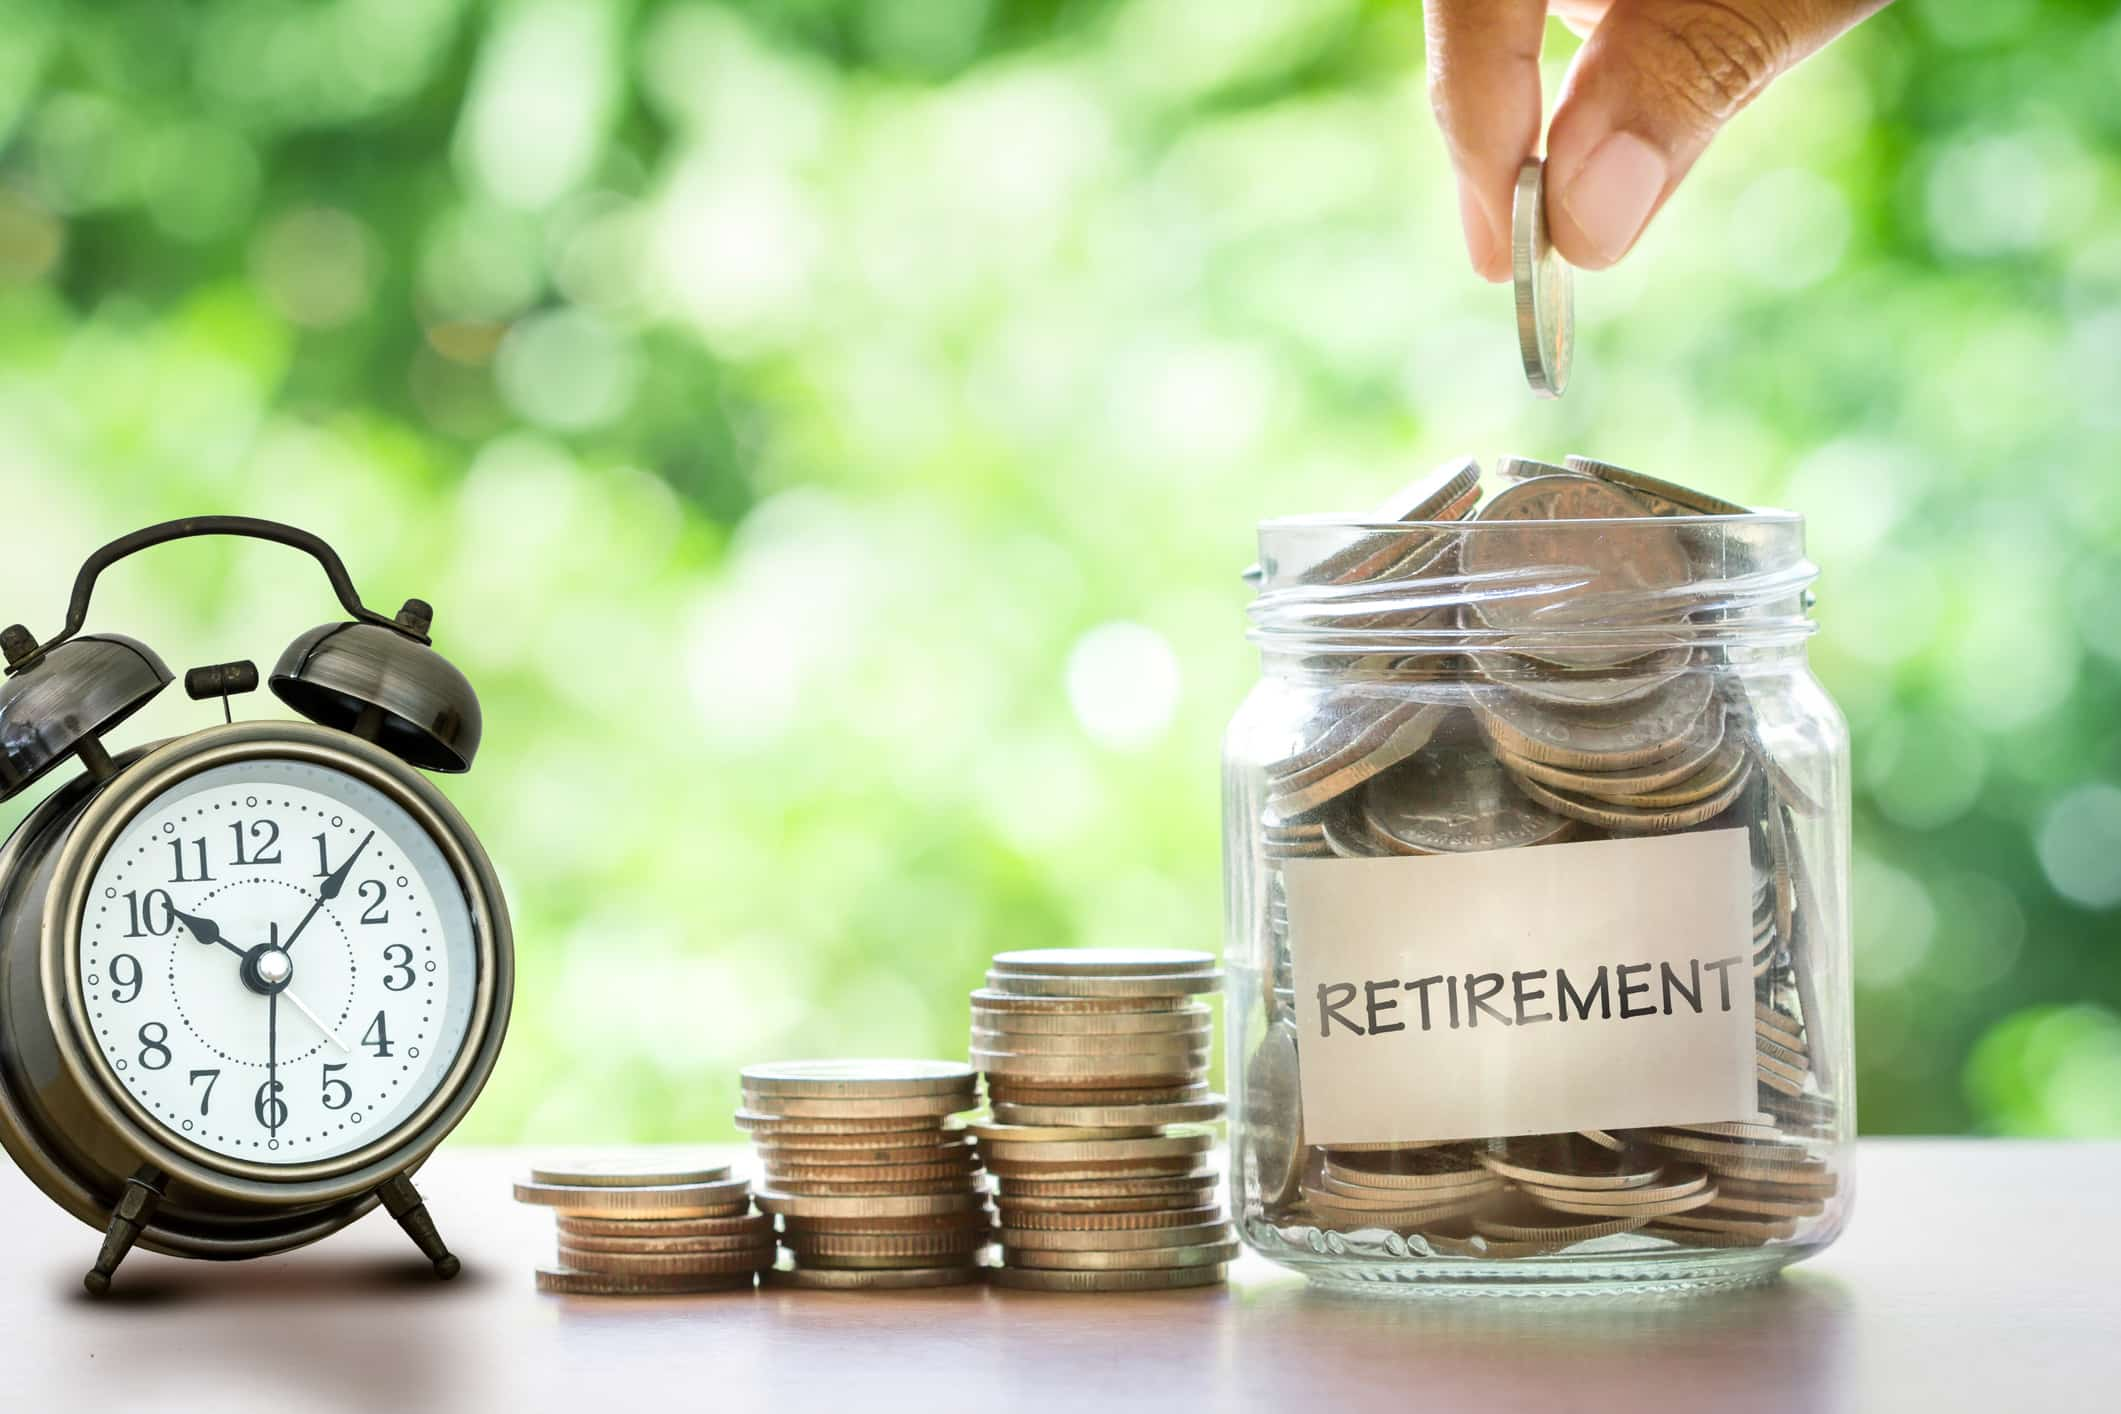 Effective use of tax wrappers in retirement